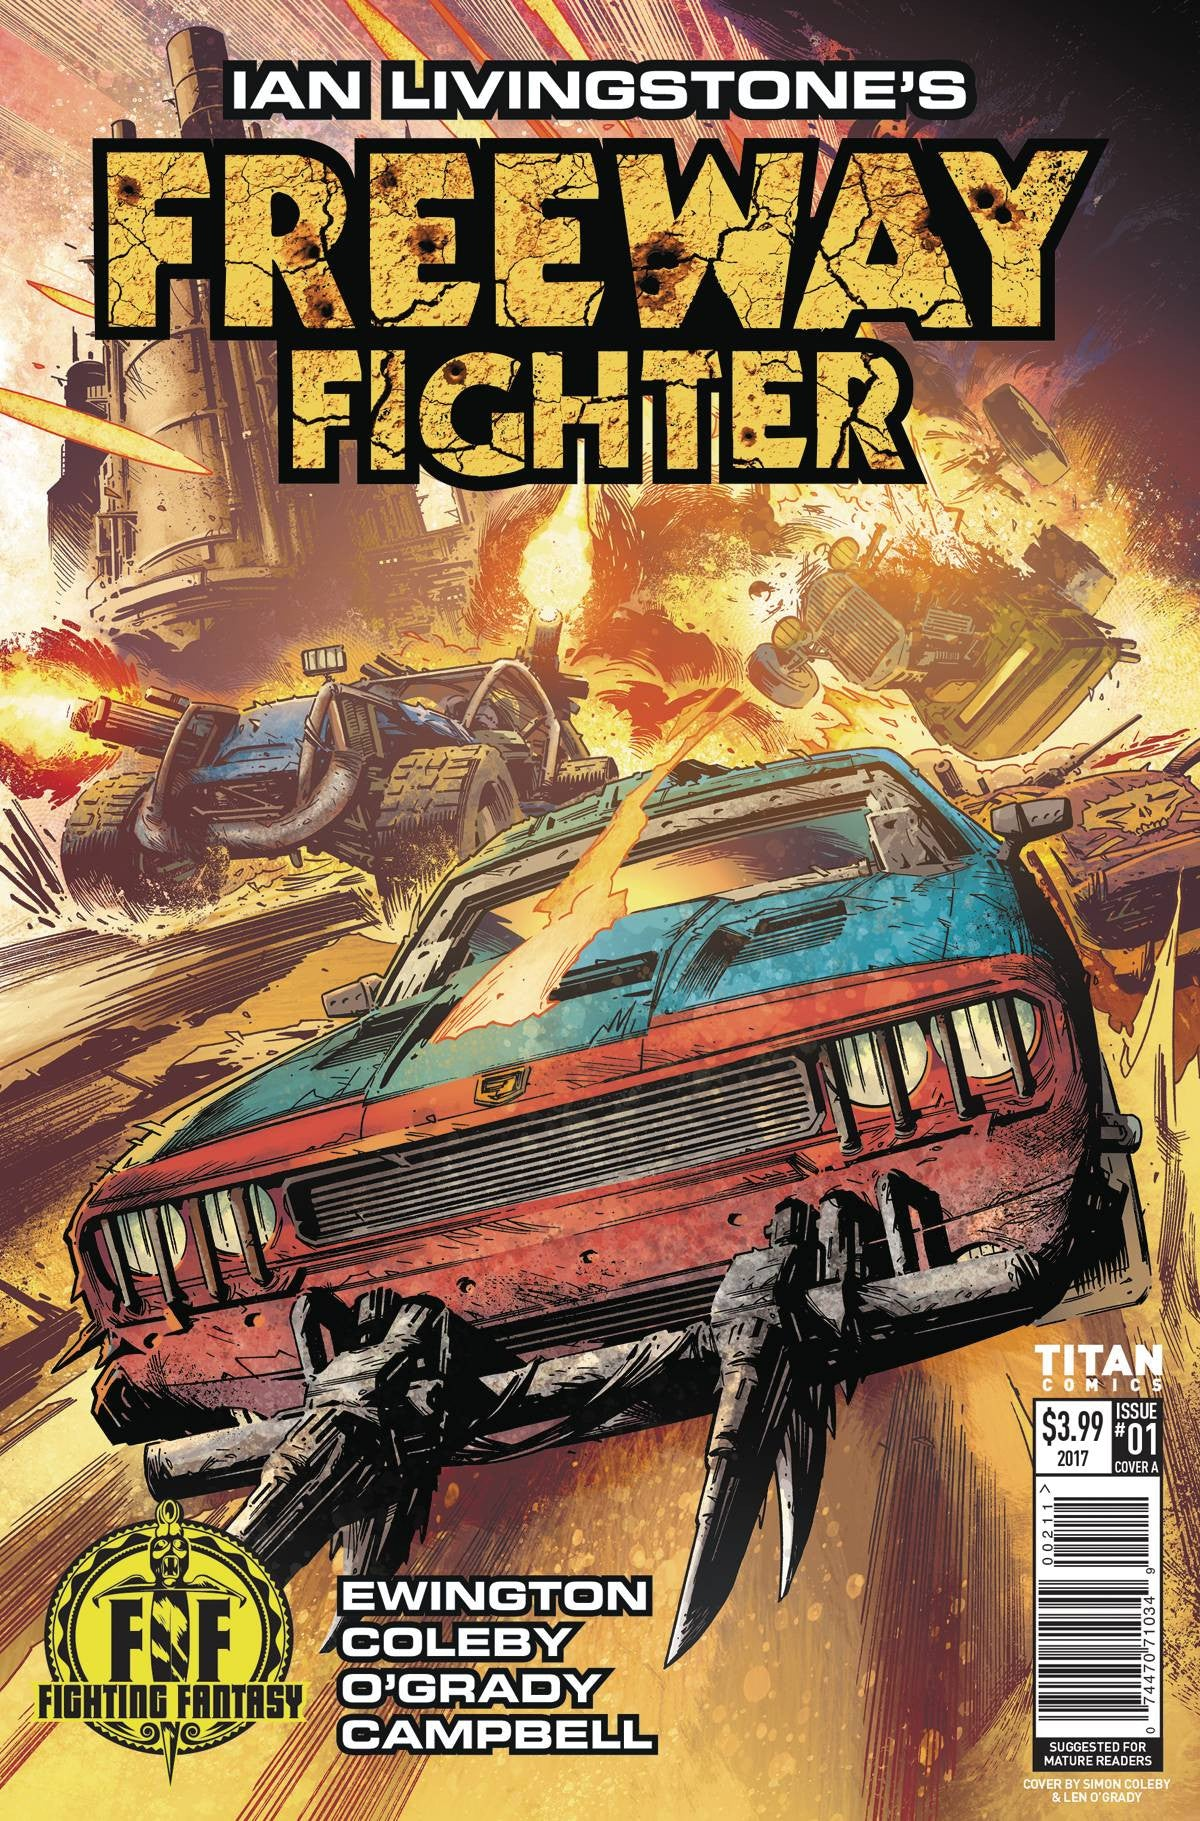 IAN LIVINGSTONES FREEWAY FIGHTER #1